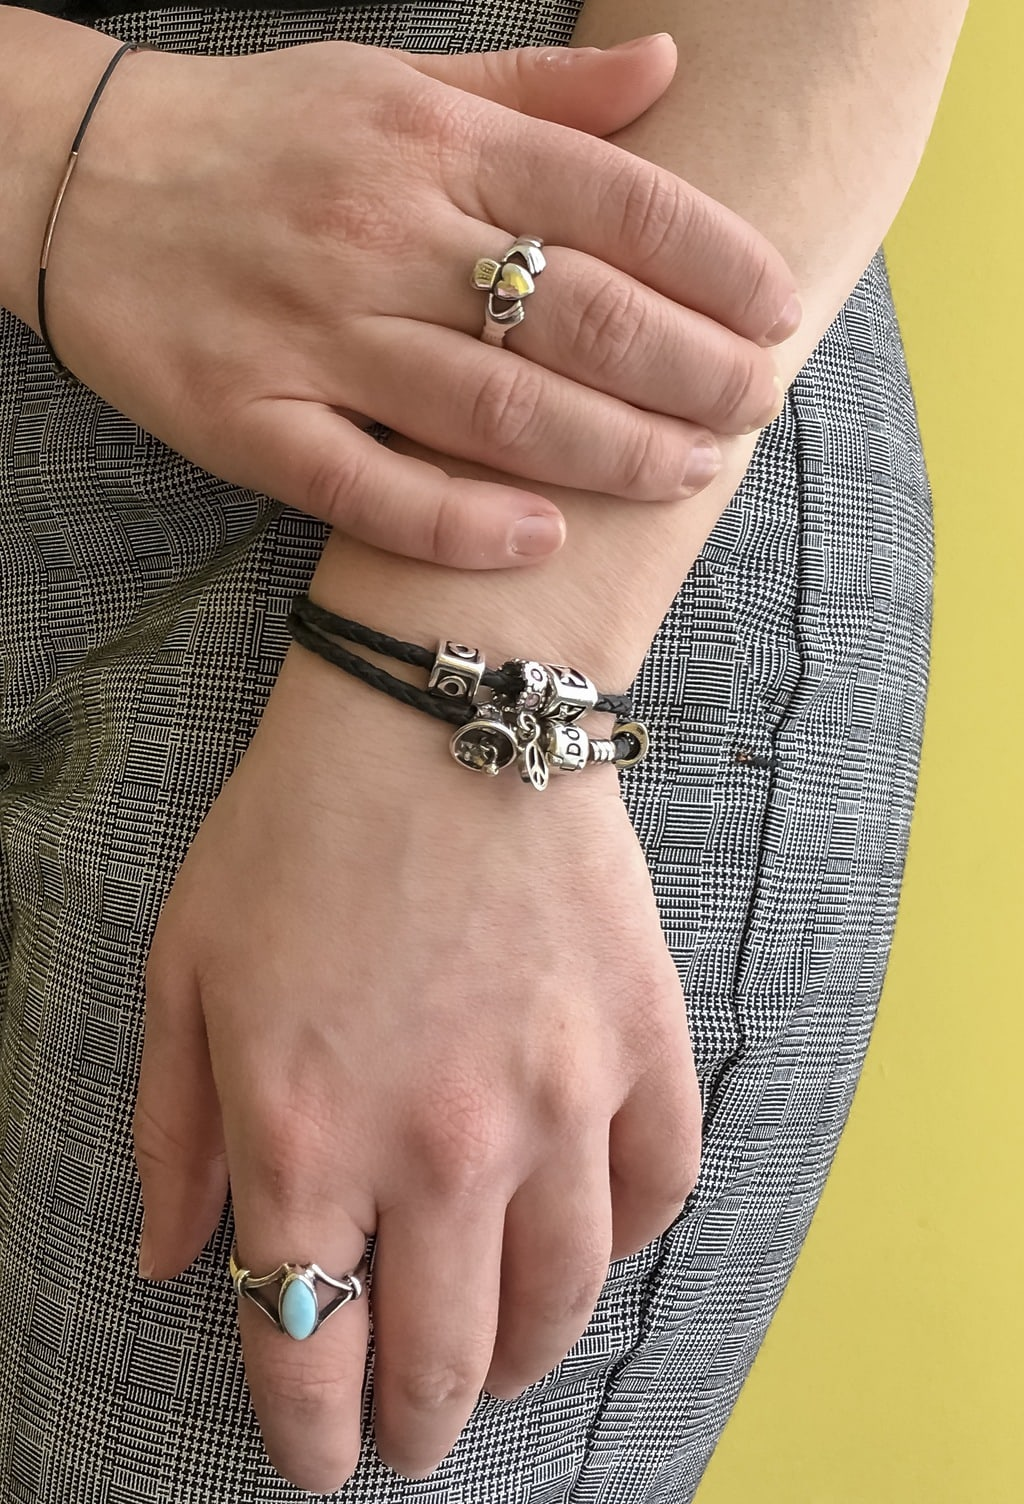 Caroline's simple silver jewelry all flows together. She wears a silver ring with a heart on it, black braided bracelets with silver charms, and a turquoise ring.